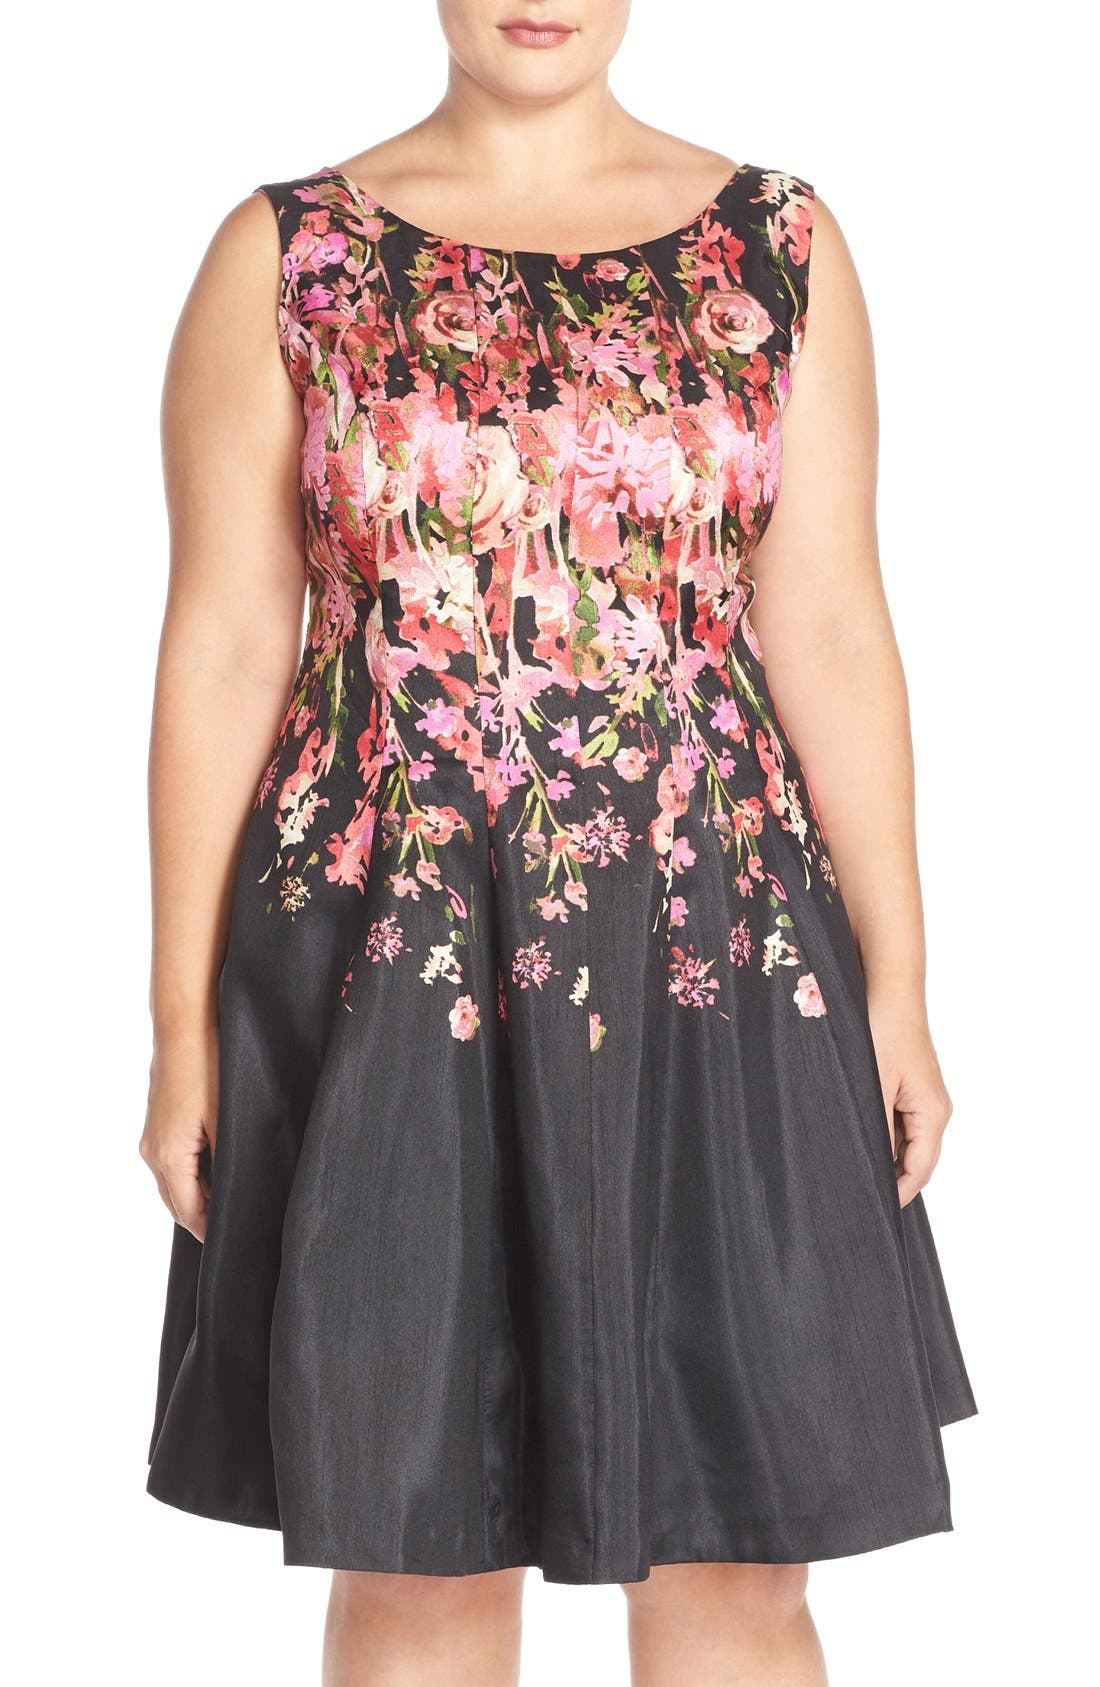 Main Image - Gabby Skye Floral Shantung Fit & Flare Dress (Plus Size)